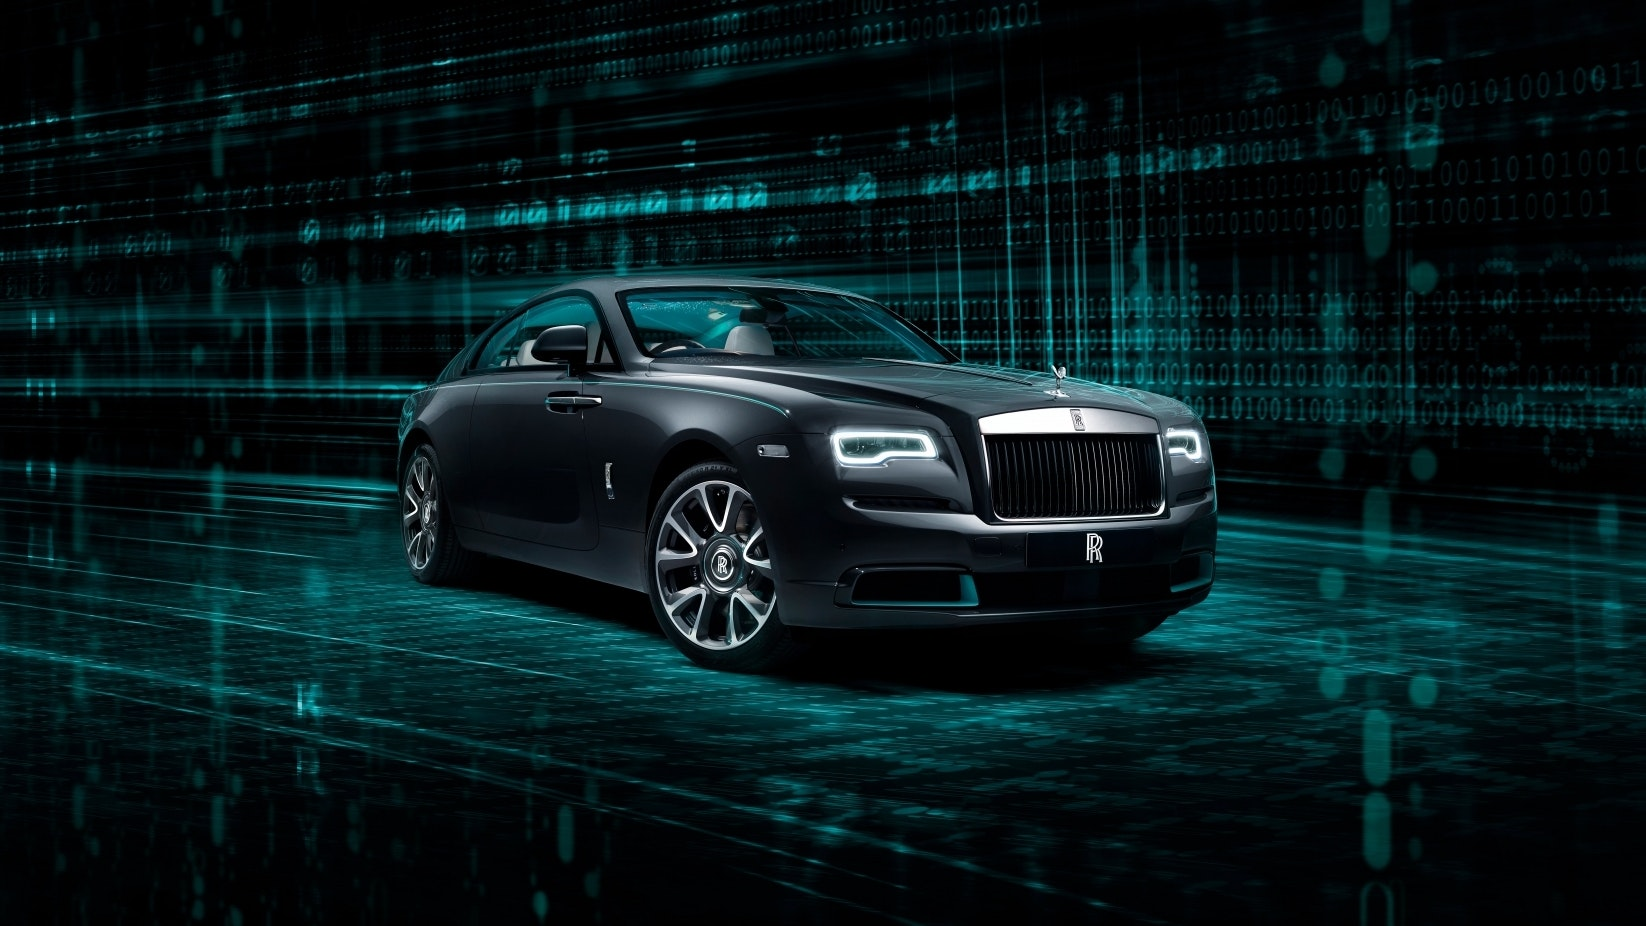 New Rolls-Royce Wraith Kryptos invites owners to decipher encrypted message